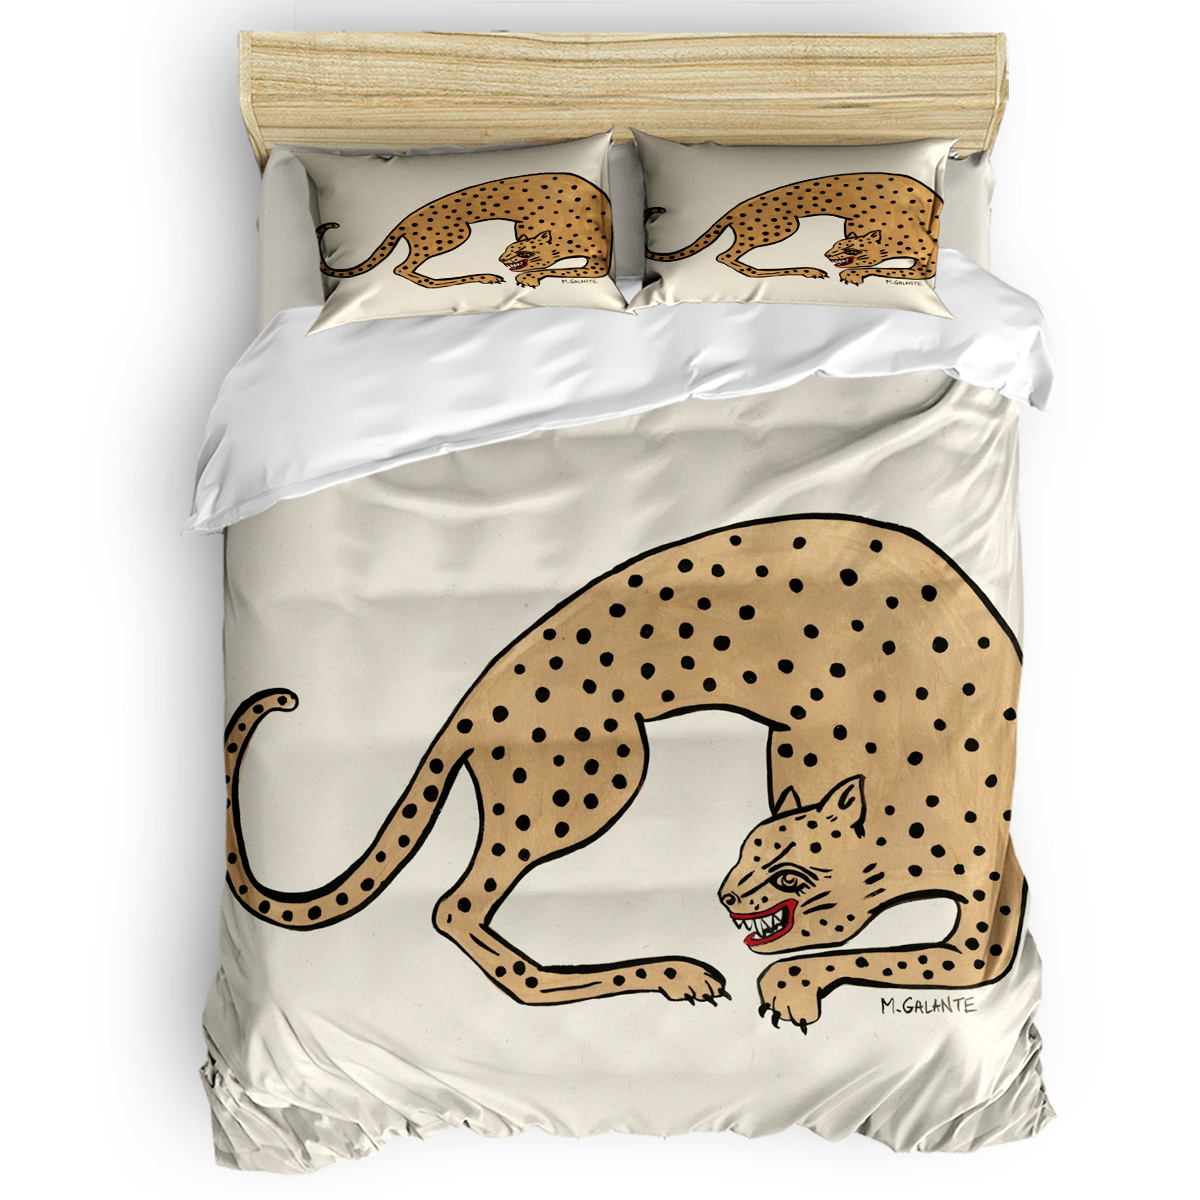 Vintage Retro Wild Beast Cheetah Duvet Cover Set Animals Beige Collection of 3/4pcs Custom Bedding Set Bed Sheet Cover SetVintage Retro Wild Beast Cheetah Duvet Cover Set Animals Beige Collection of 3/4pcs Custom Bedding Set Bed Sheet Cover Set